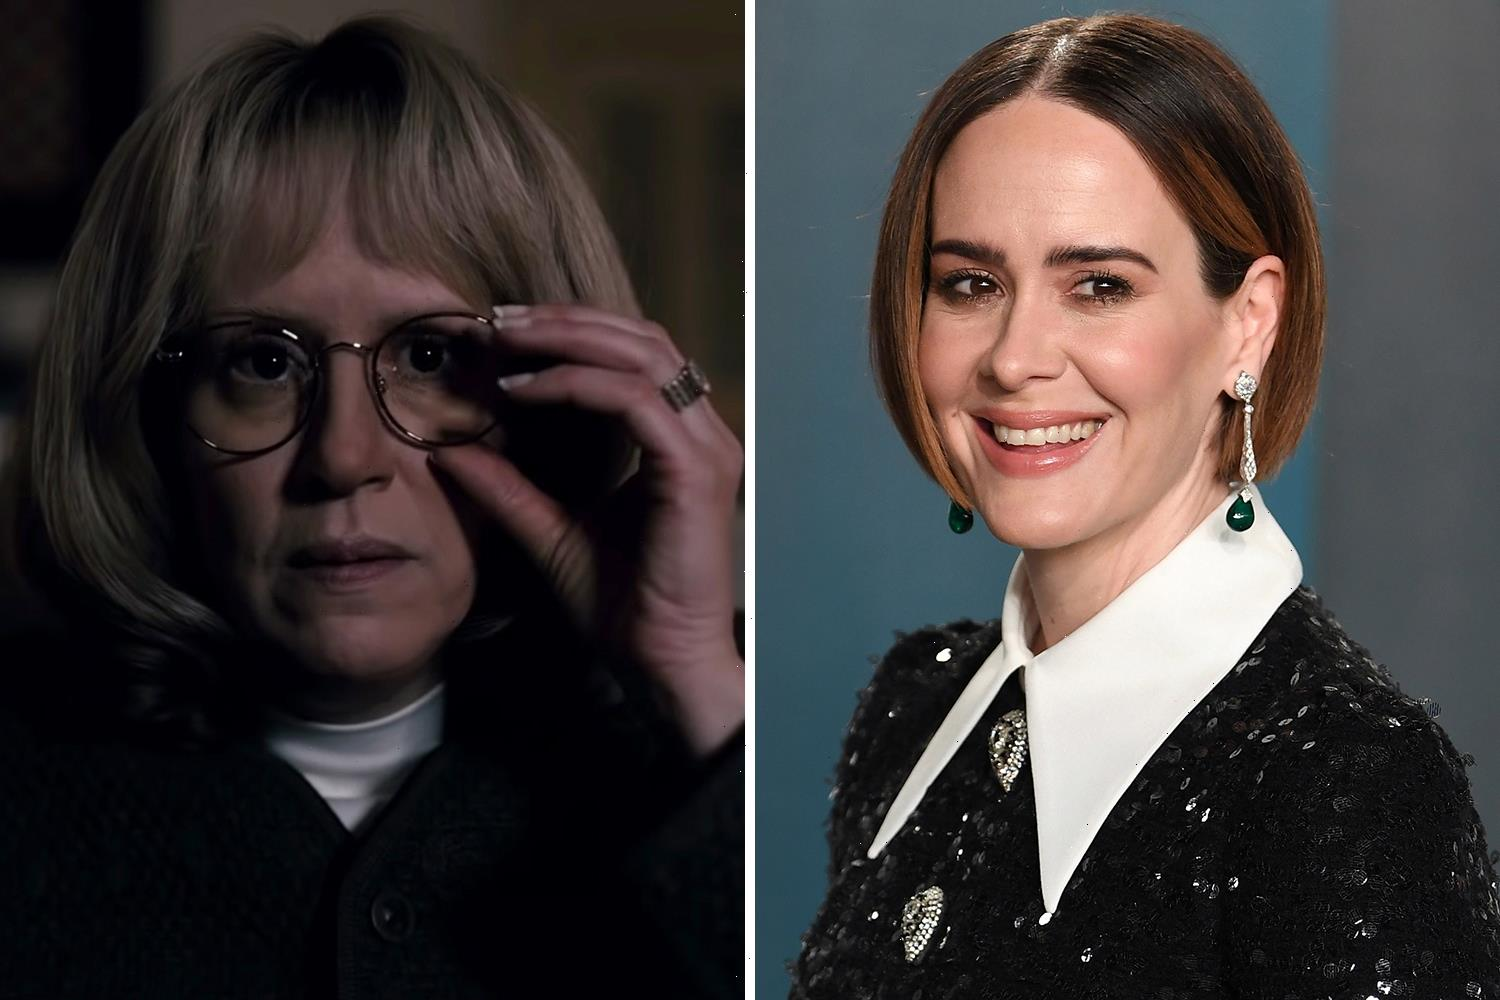 Sarah Paulson slammed for wearing a 'fat suit' to play Linda Tripp in Impeachment drama about Clinton-Lewinsky scandal